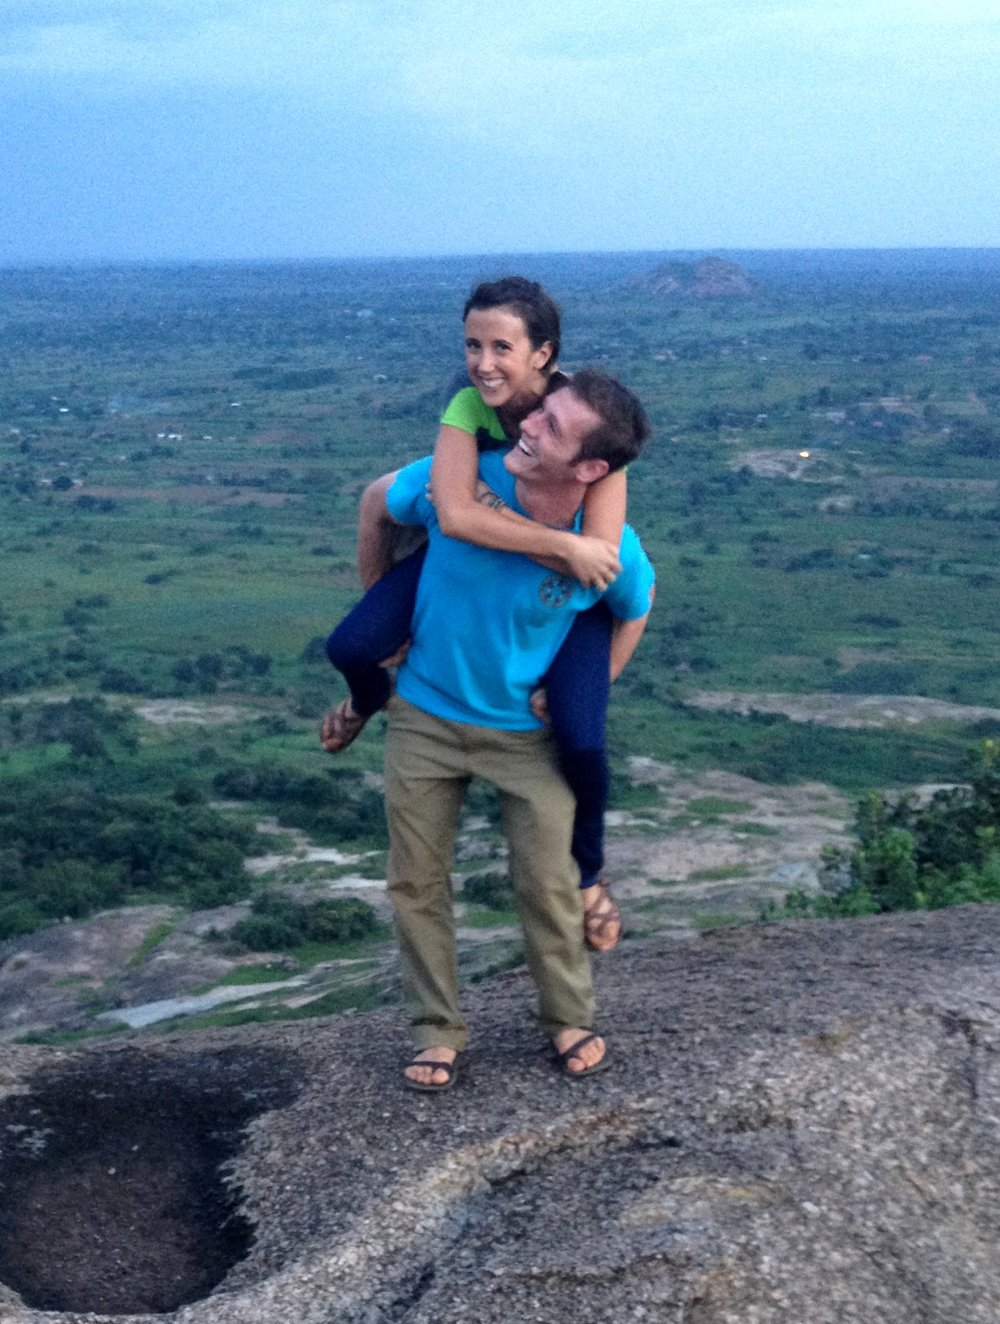 Atop a hill in our town in Uganda. Circa 2014.